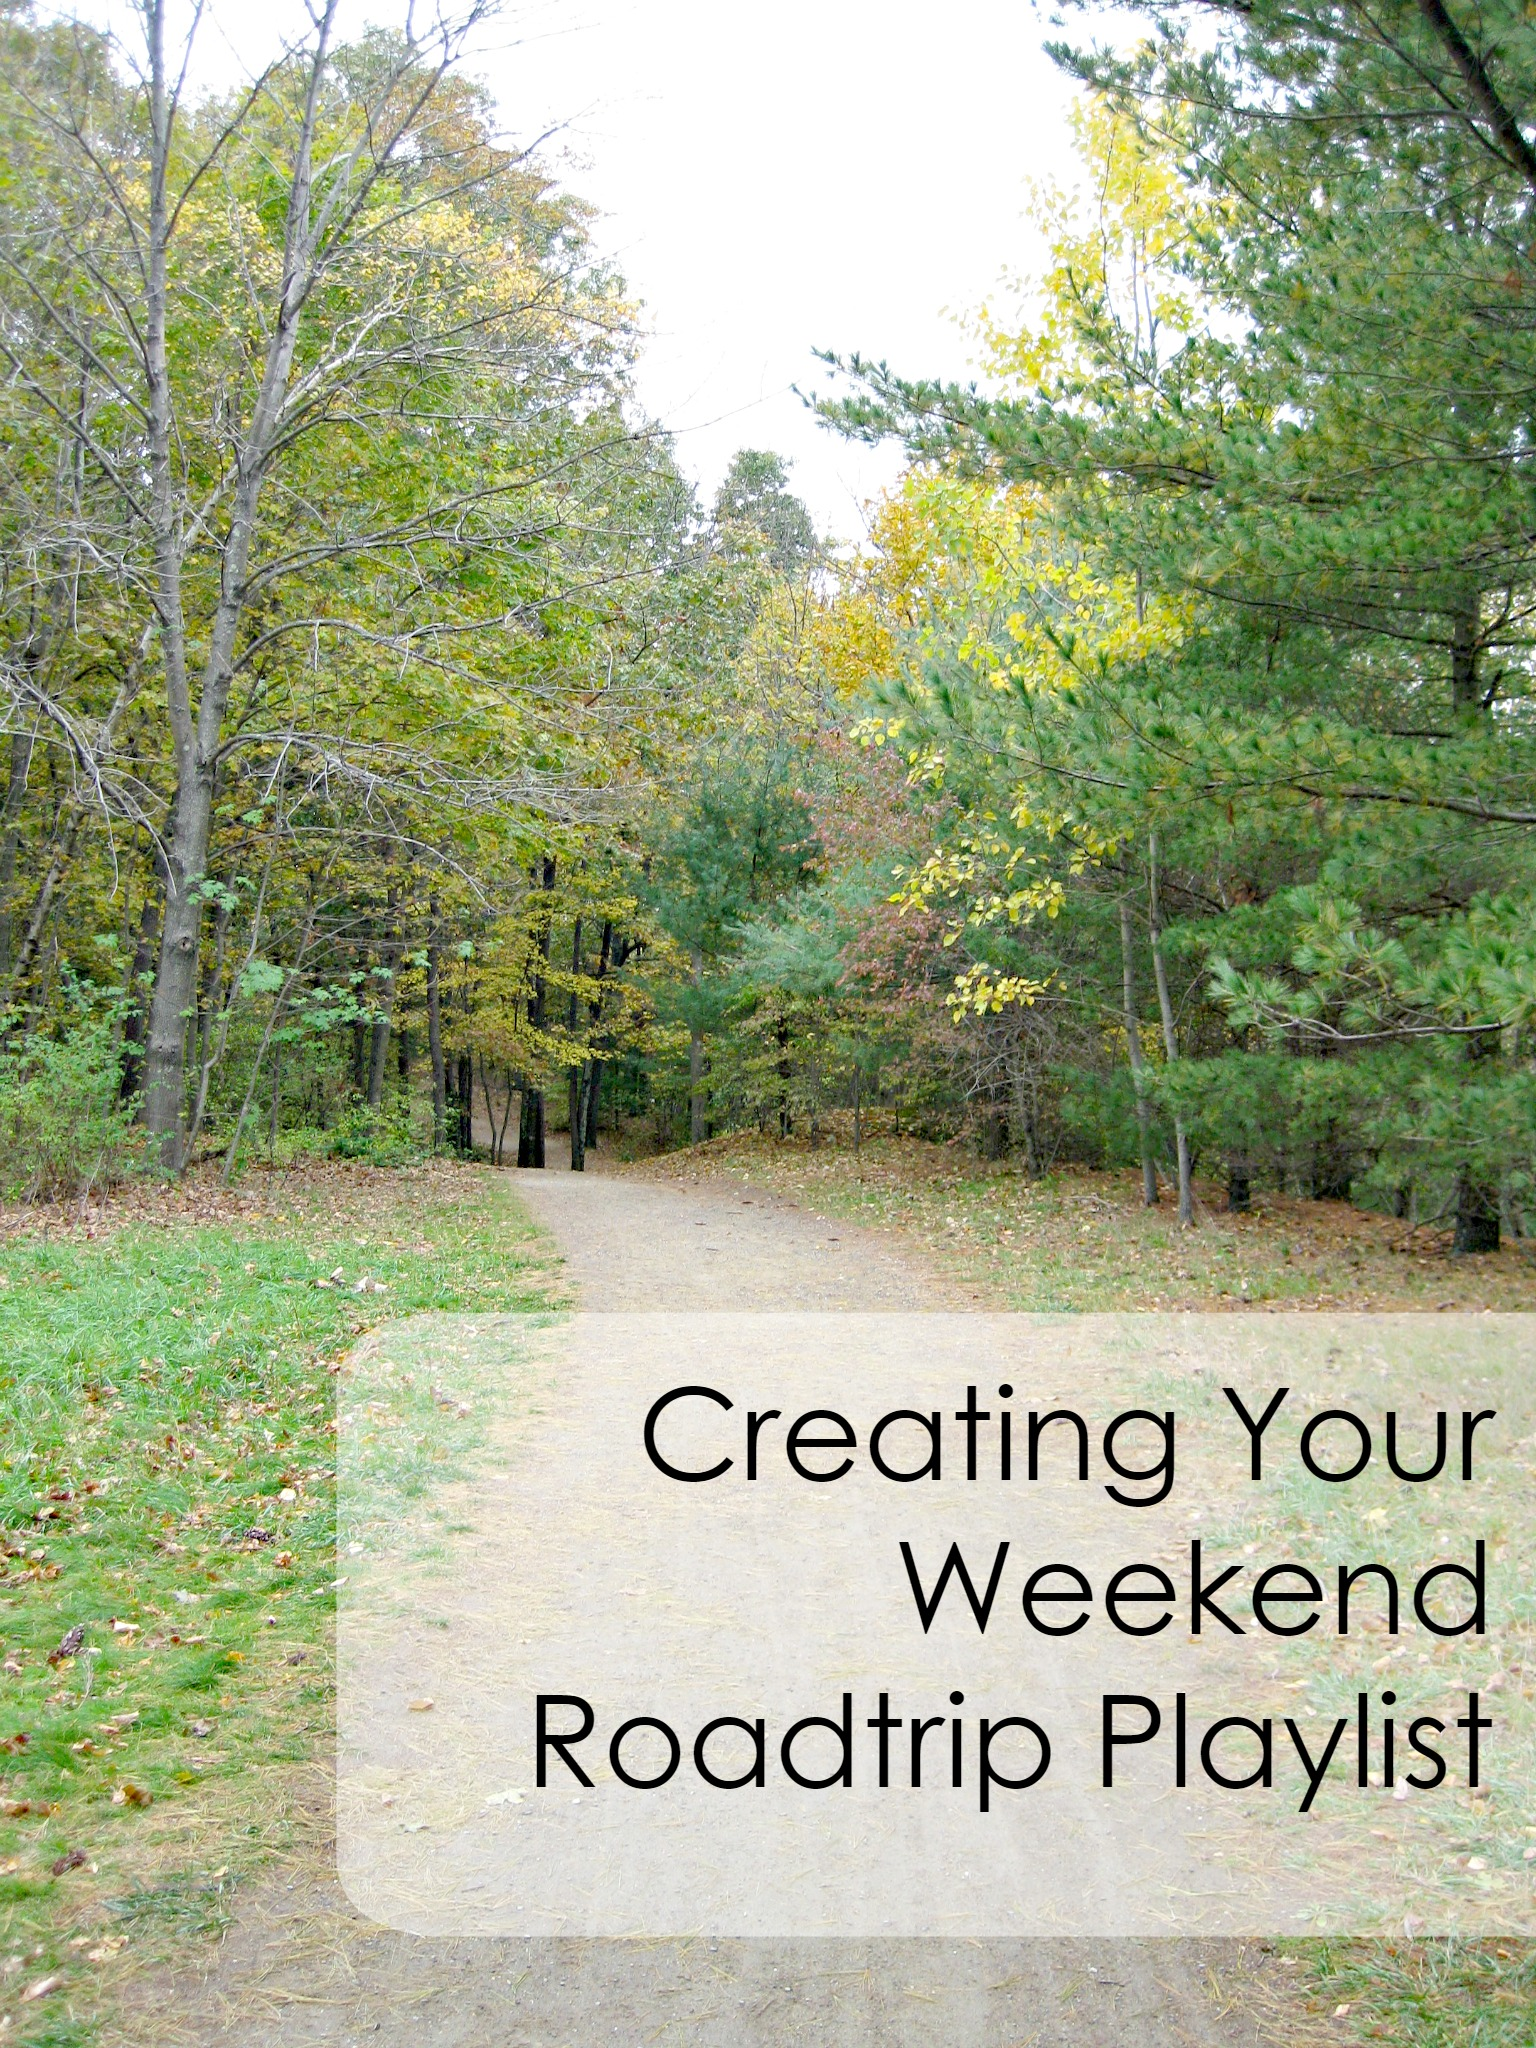 Creating Your Weekend Roadtrip Playlist